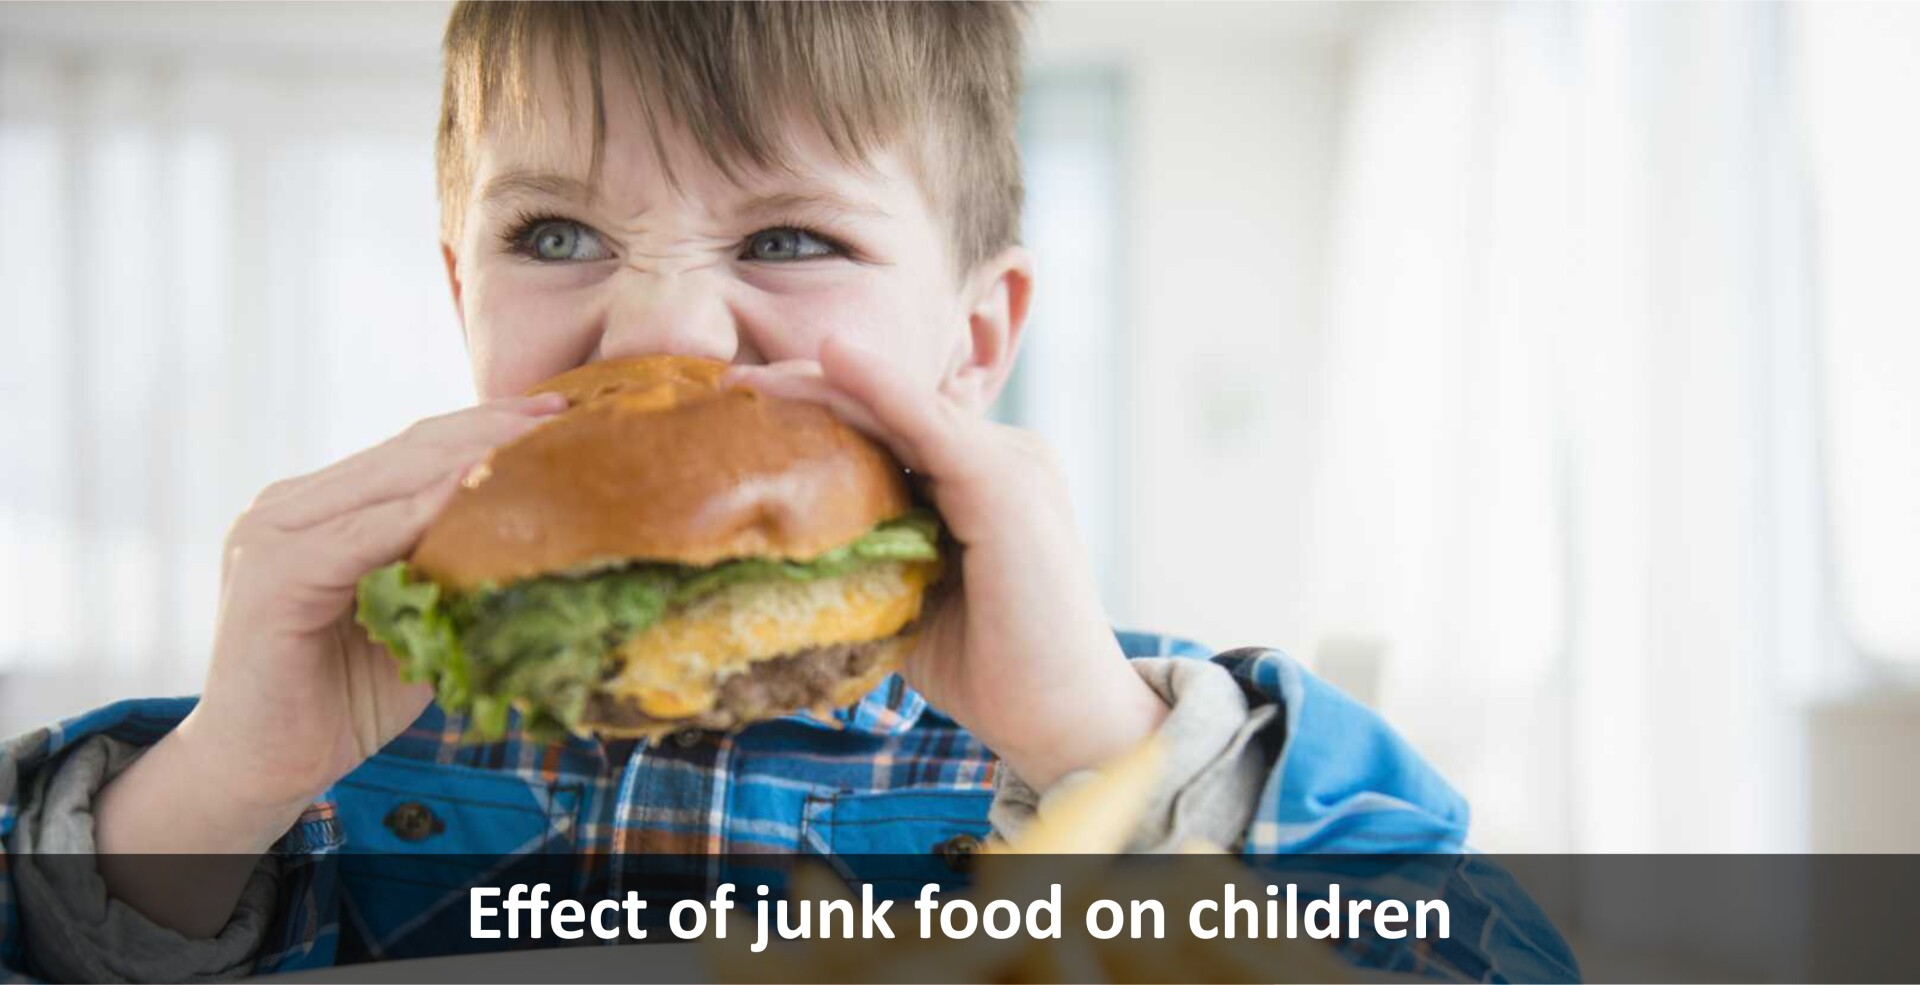 Effect of junk food on children